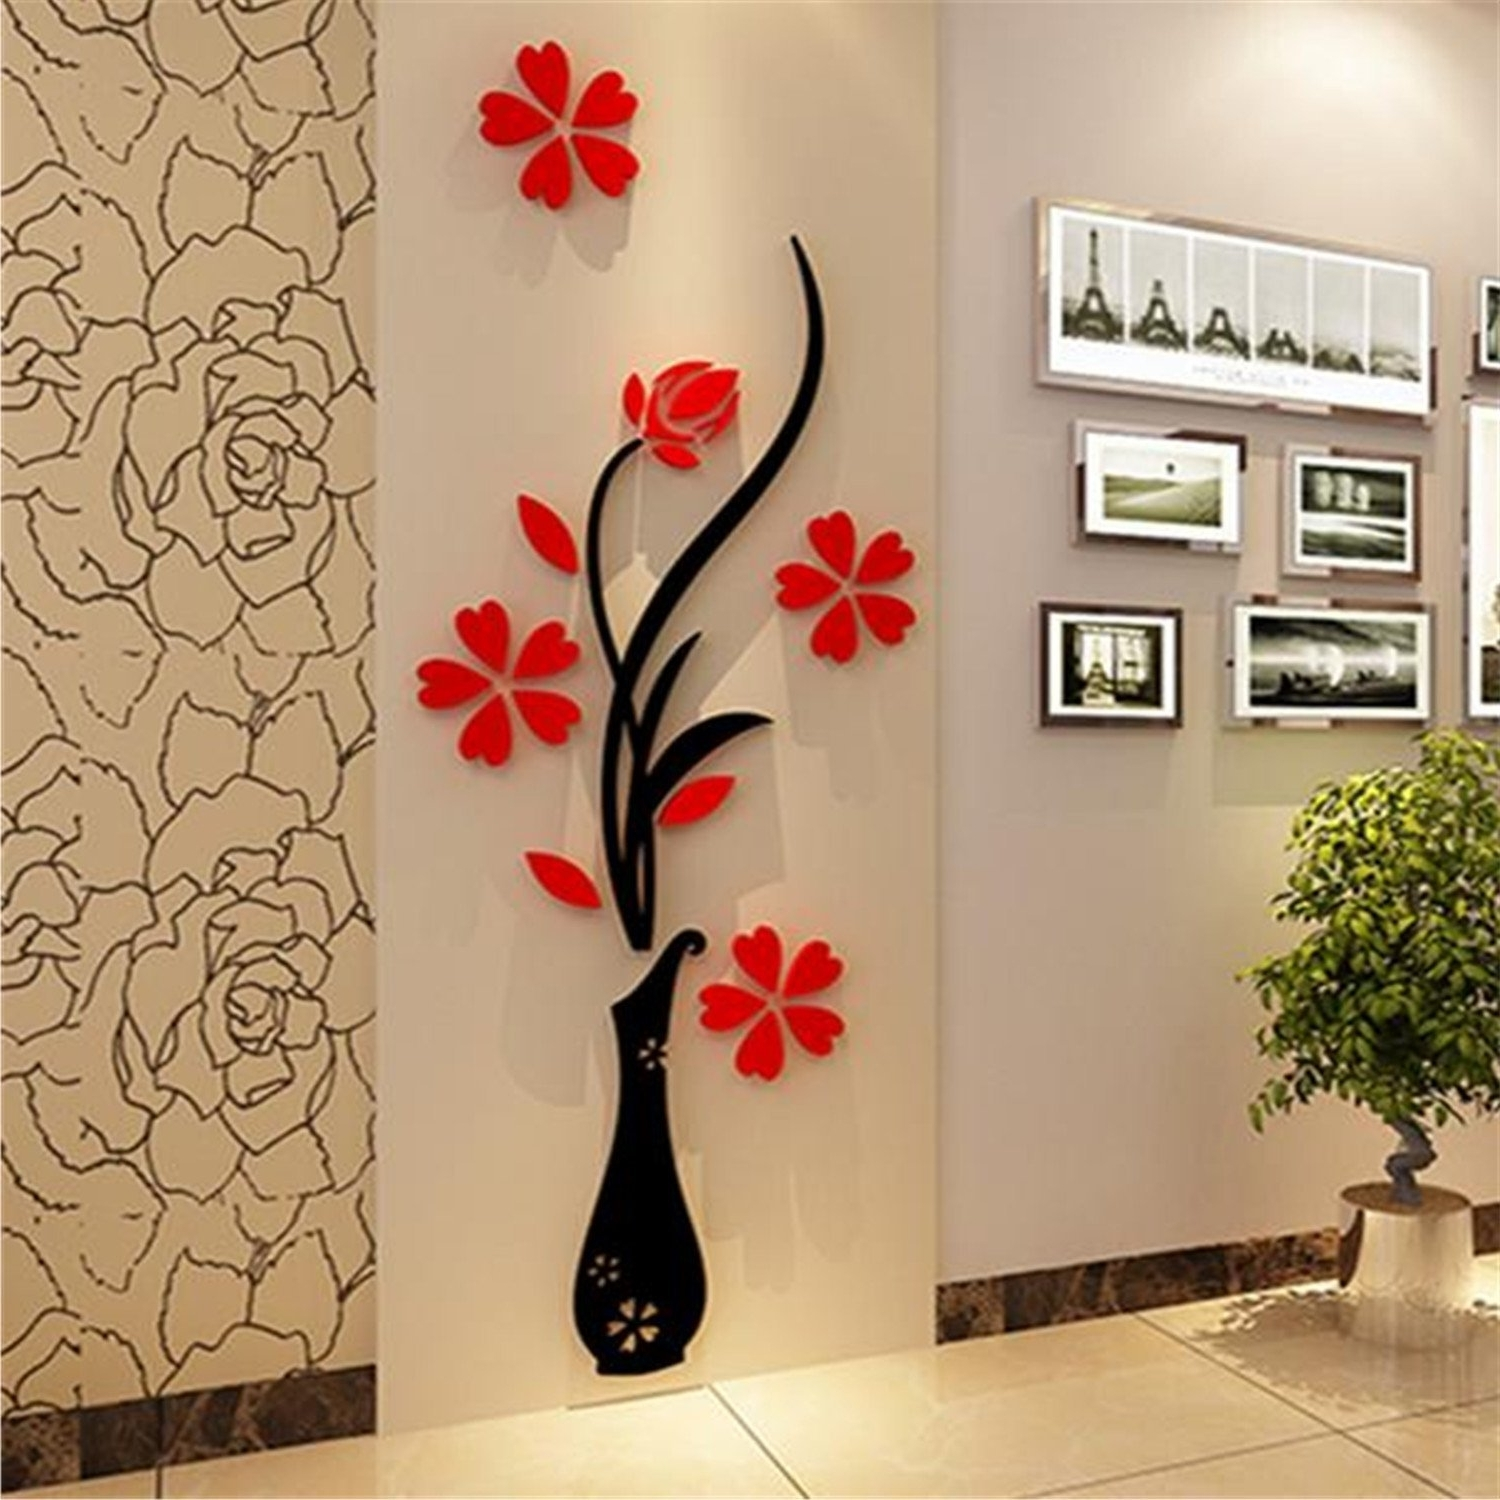 3d Wall Decor Flowers – 3d Wall Décor For Your Living Room For Current 3d Wall Art With Lights (View 8 of 15)